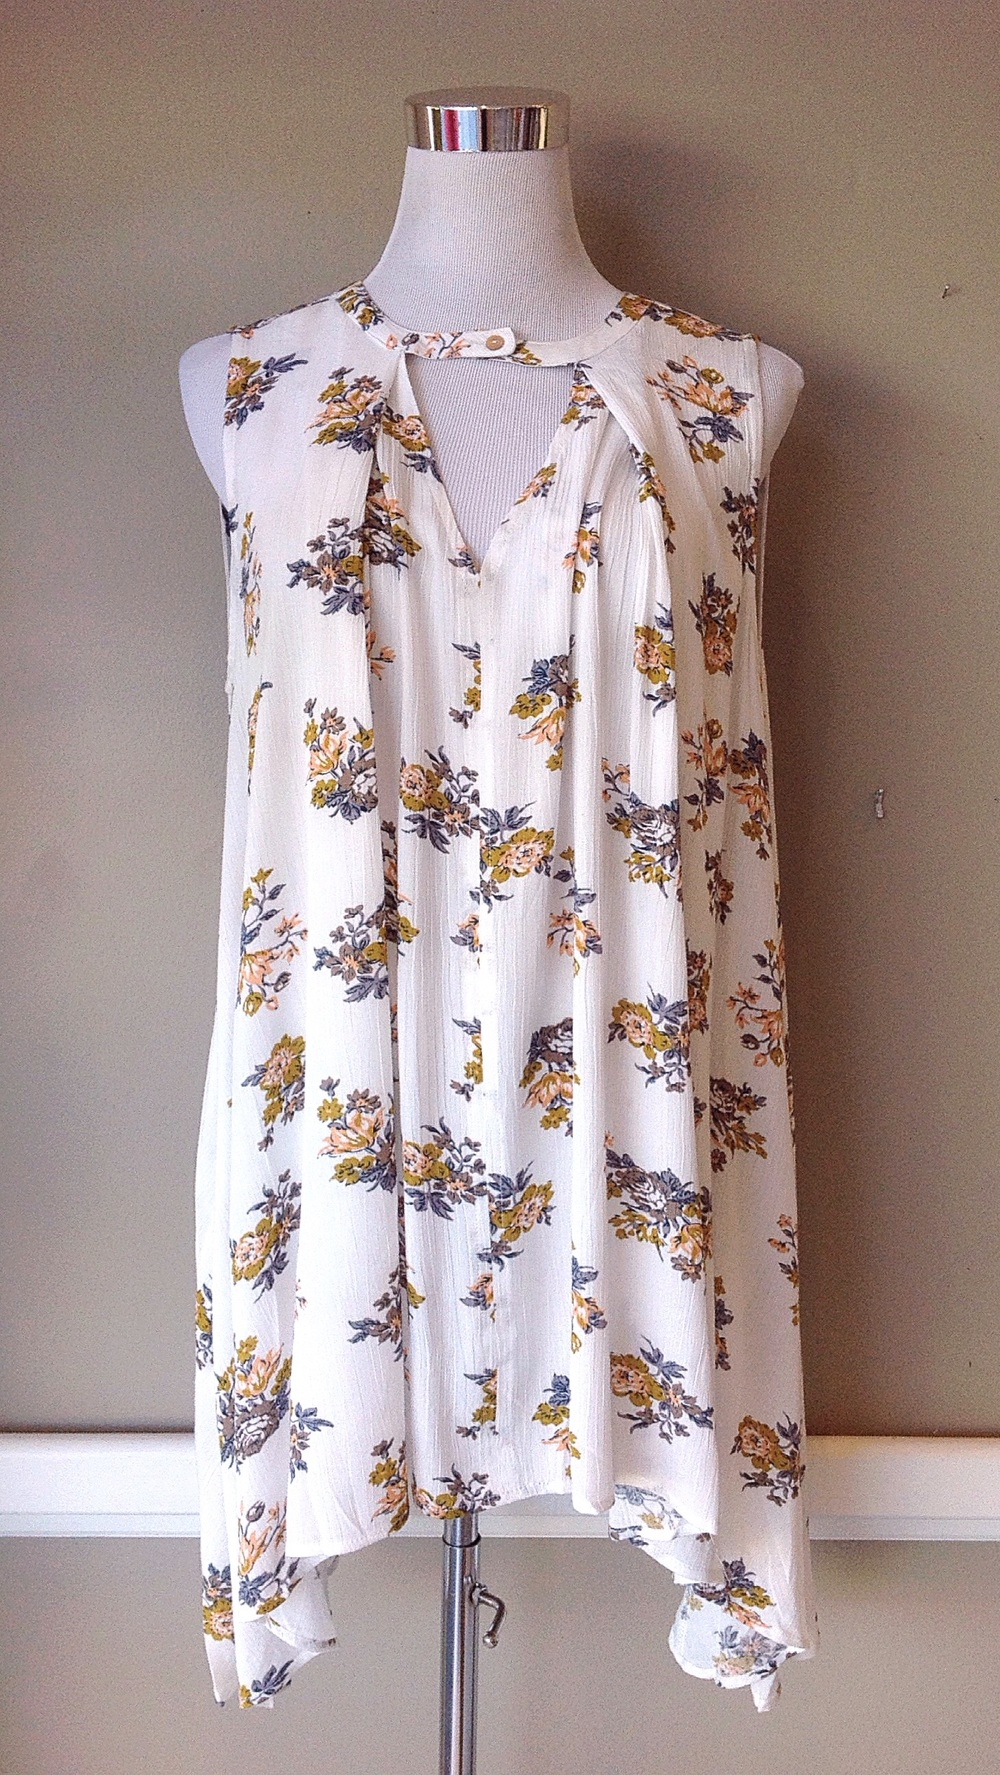 Floral print dress with handkerchief hem and front keyhole, $35